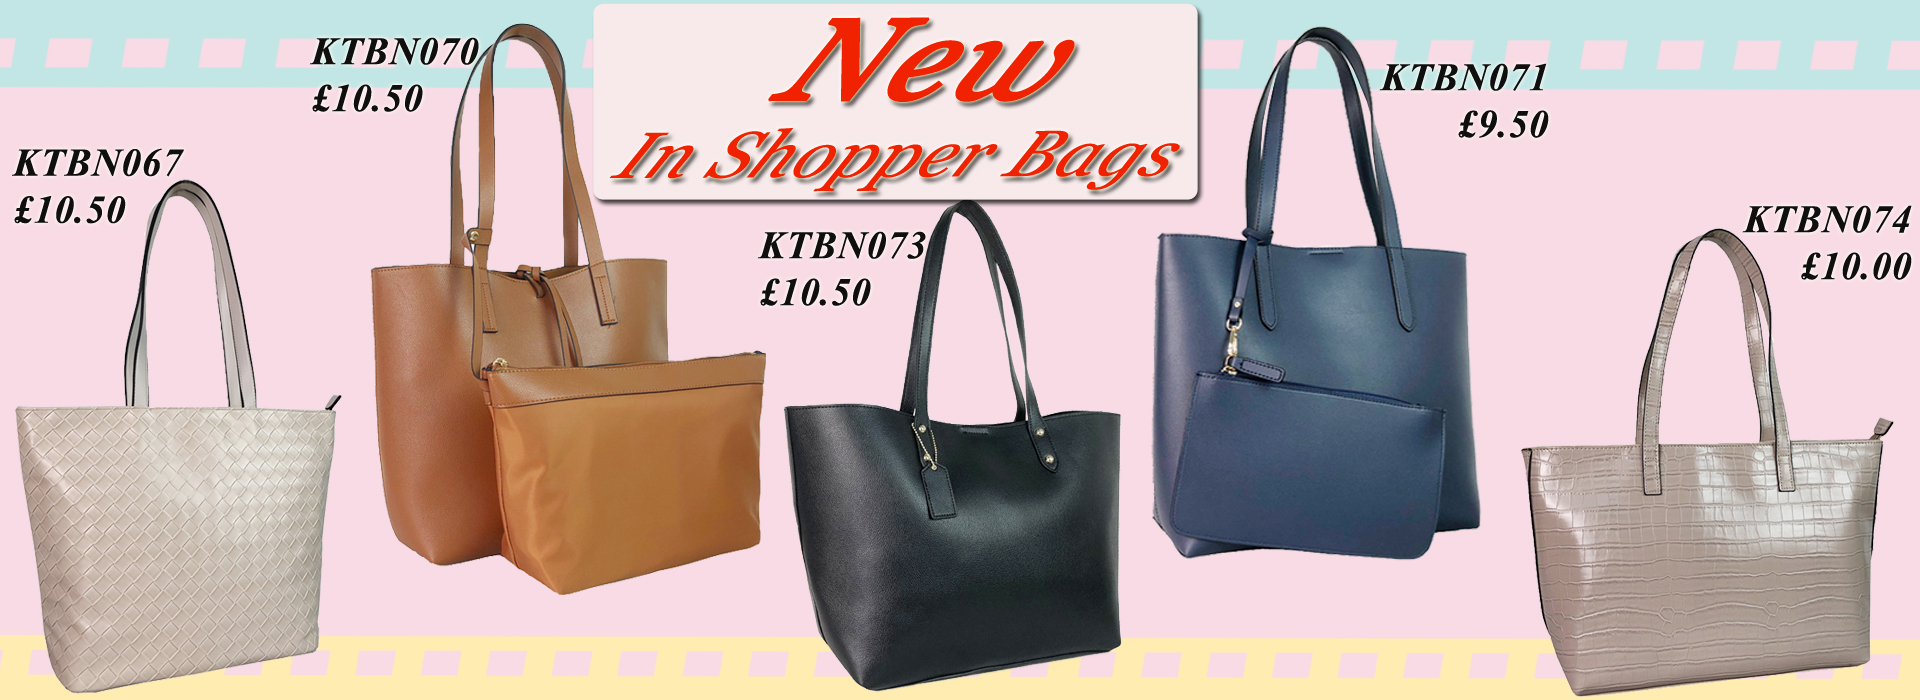 New_in_shopperbags